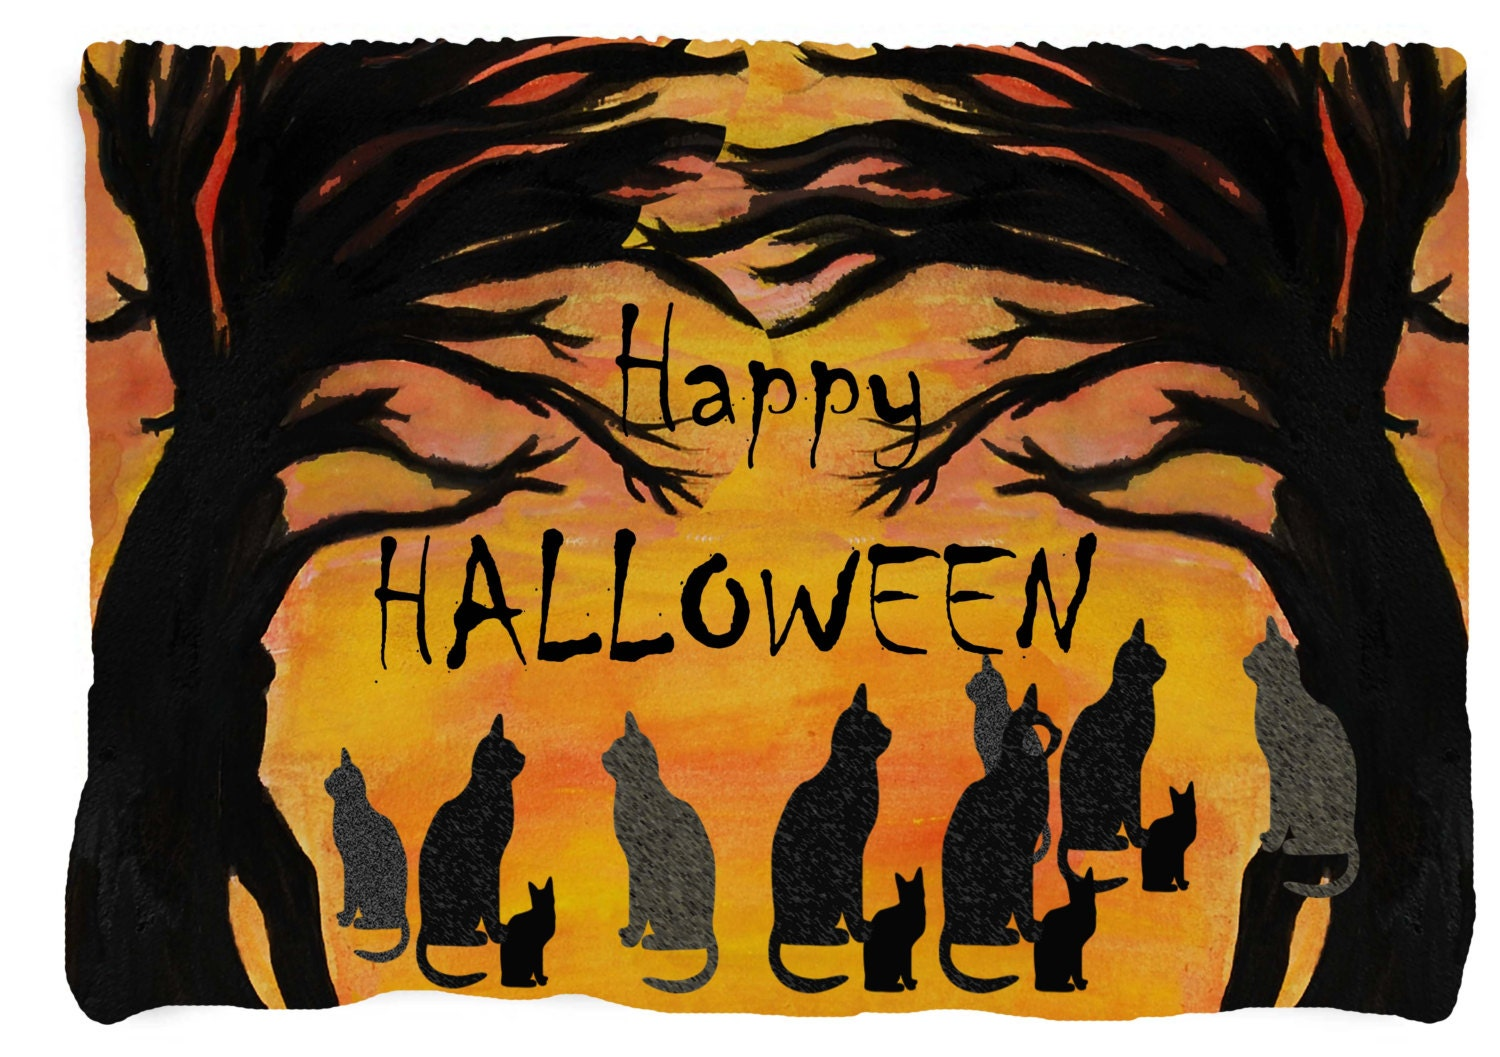 Happy Halloween Black Cats & Trees Throw by maremade